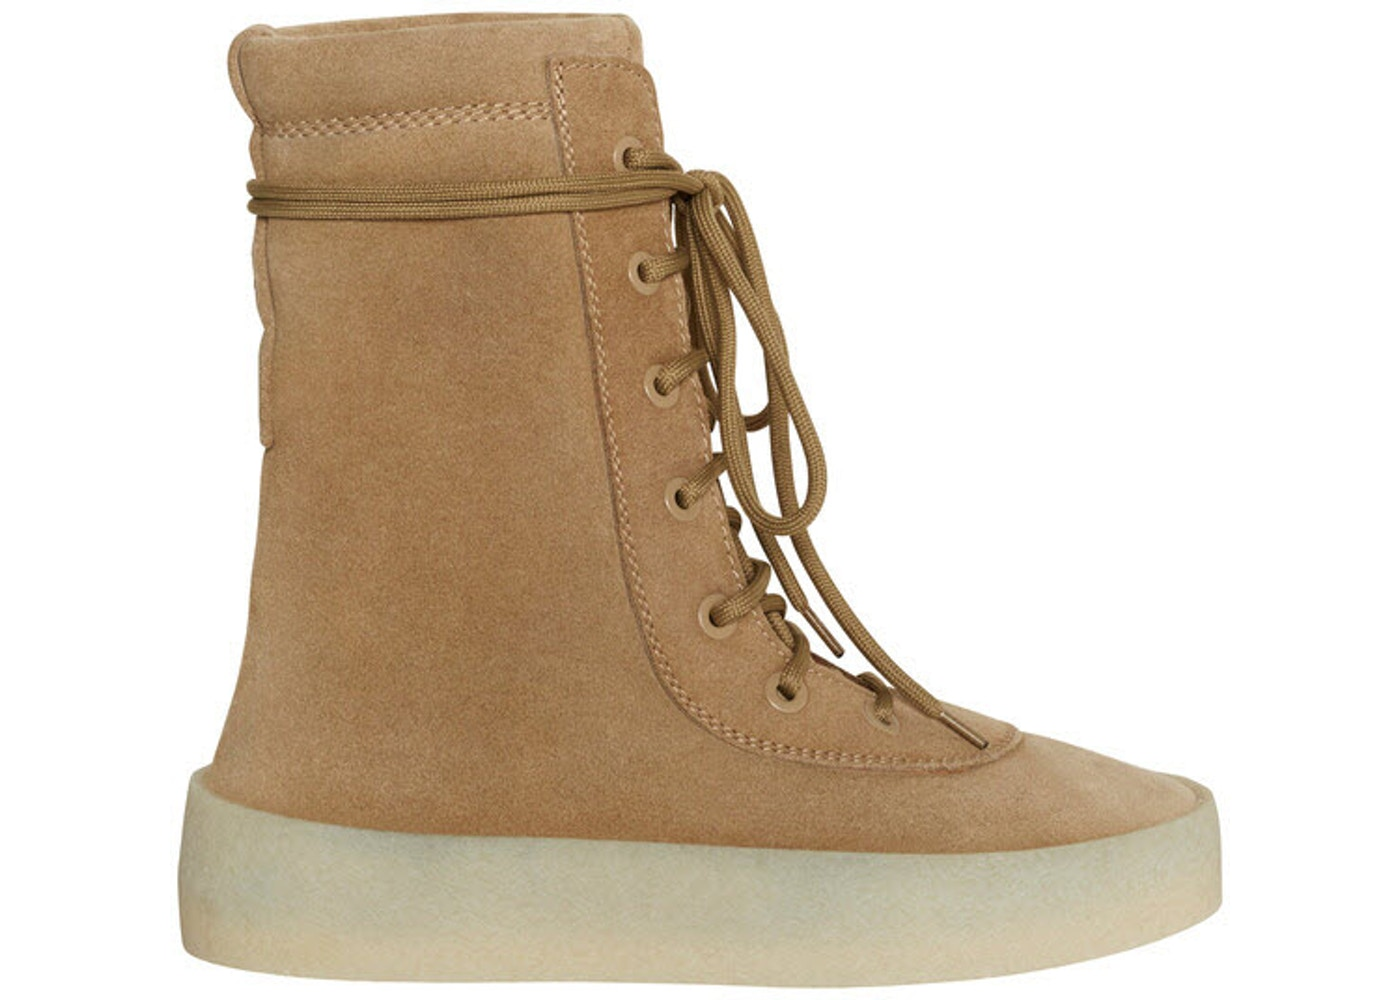 598def3ff1e Yeezy Military Crepe Boot Season 2 Taupe - KW1011.004